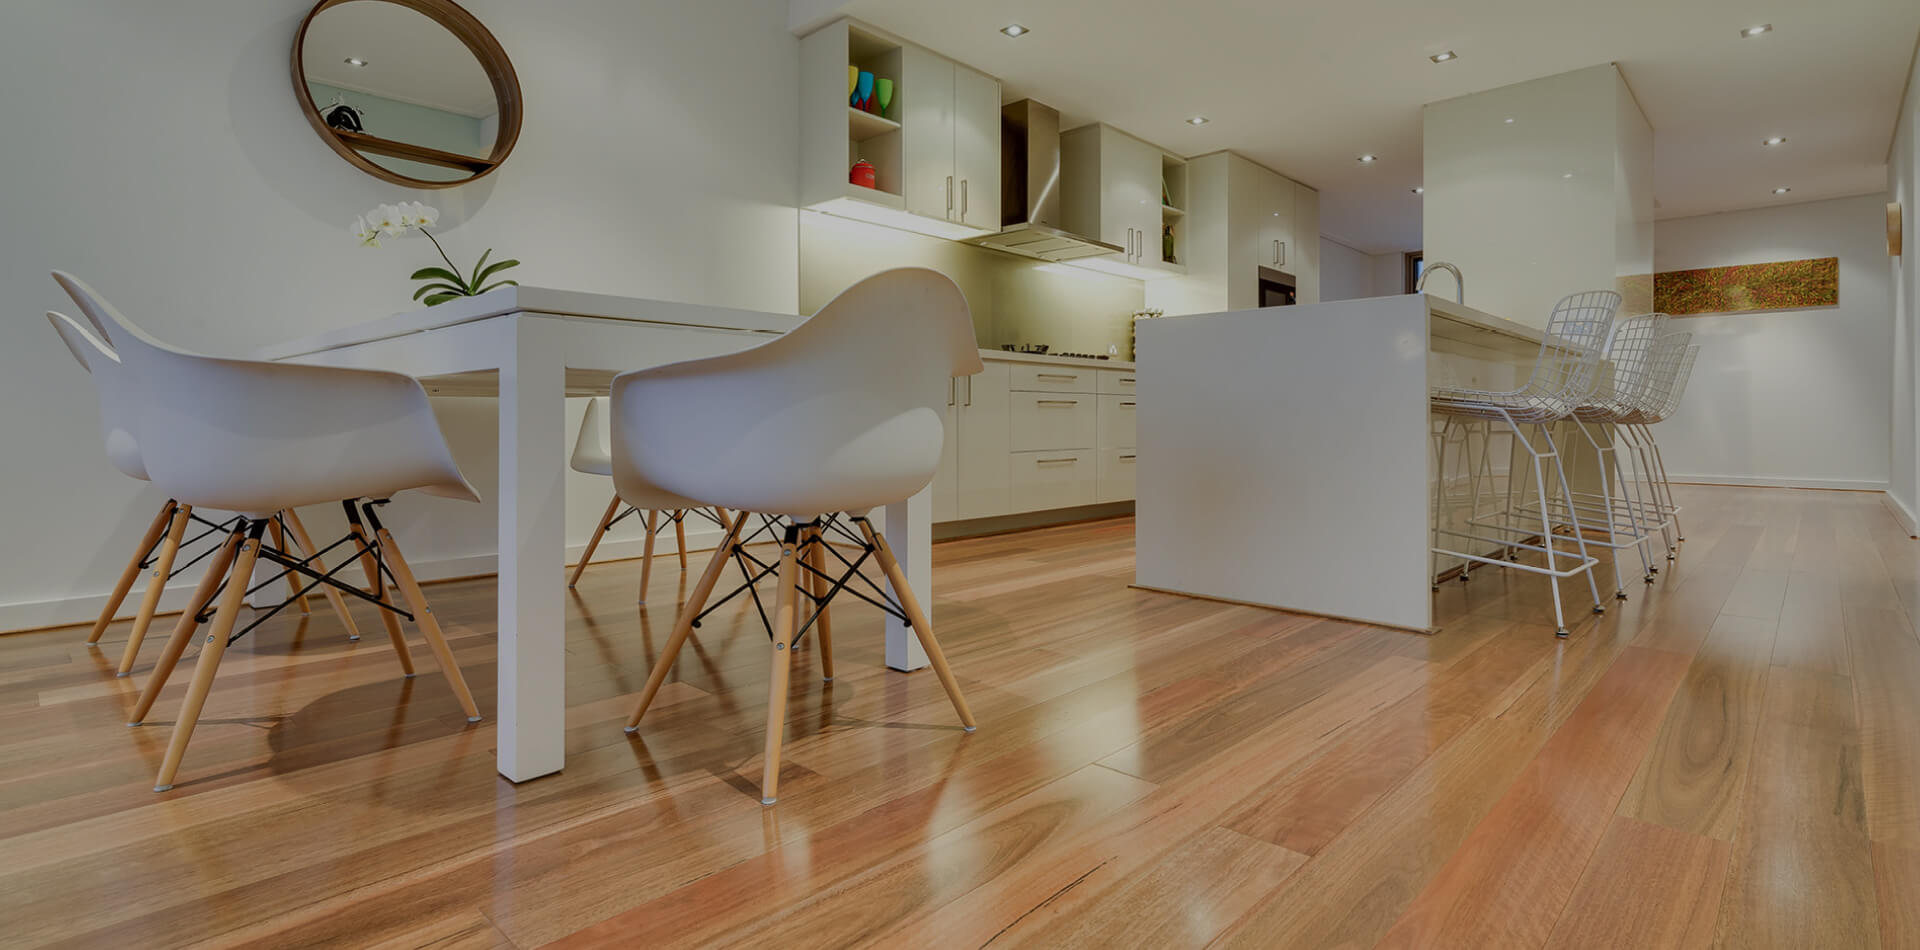 Room with wooden flooring and small wooden legged chairs